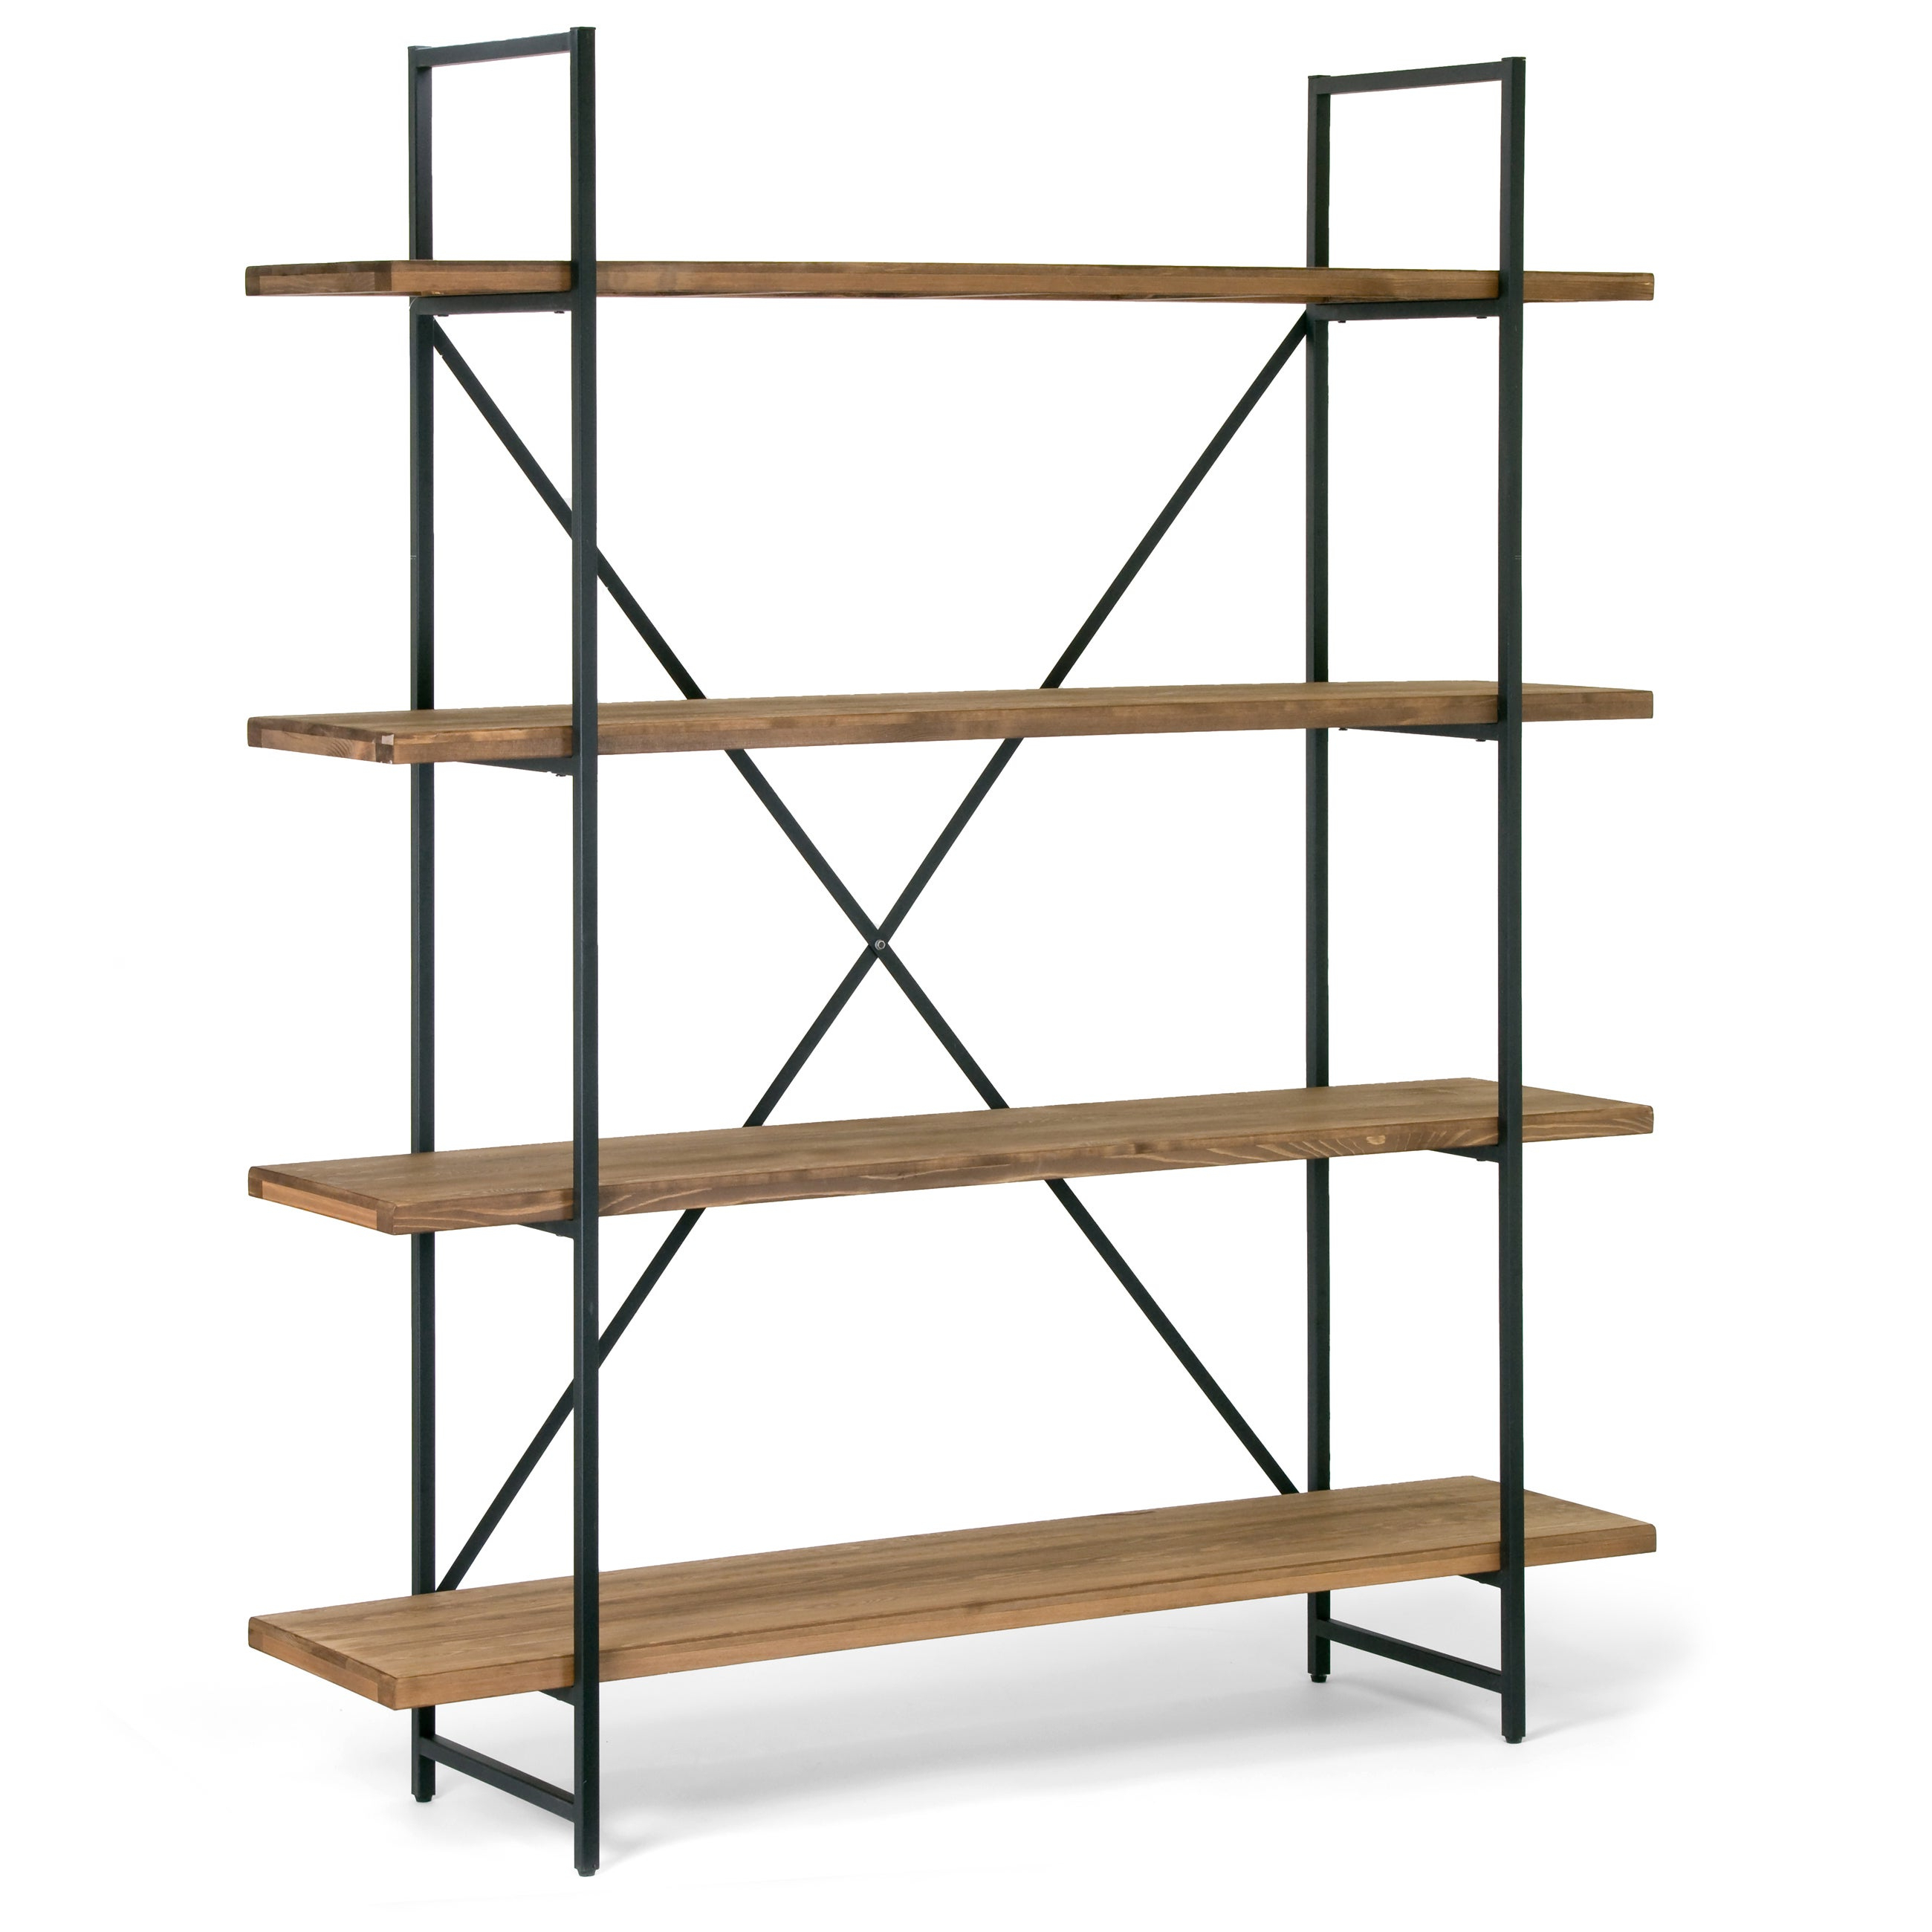 Buy Etagere Bookshelves & Bookcases Online At Overstock With Regard To Most Recent Poynor Etagere Bookcases (View 3 of 20)